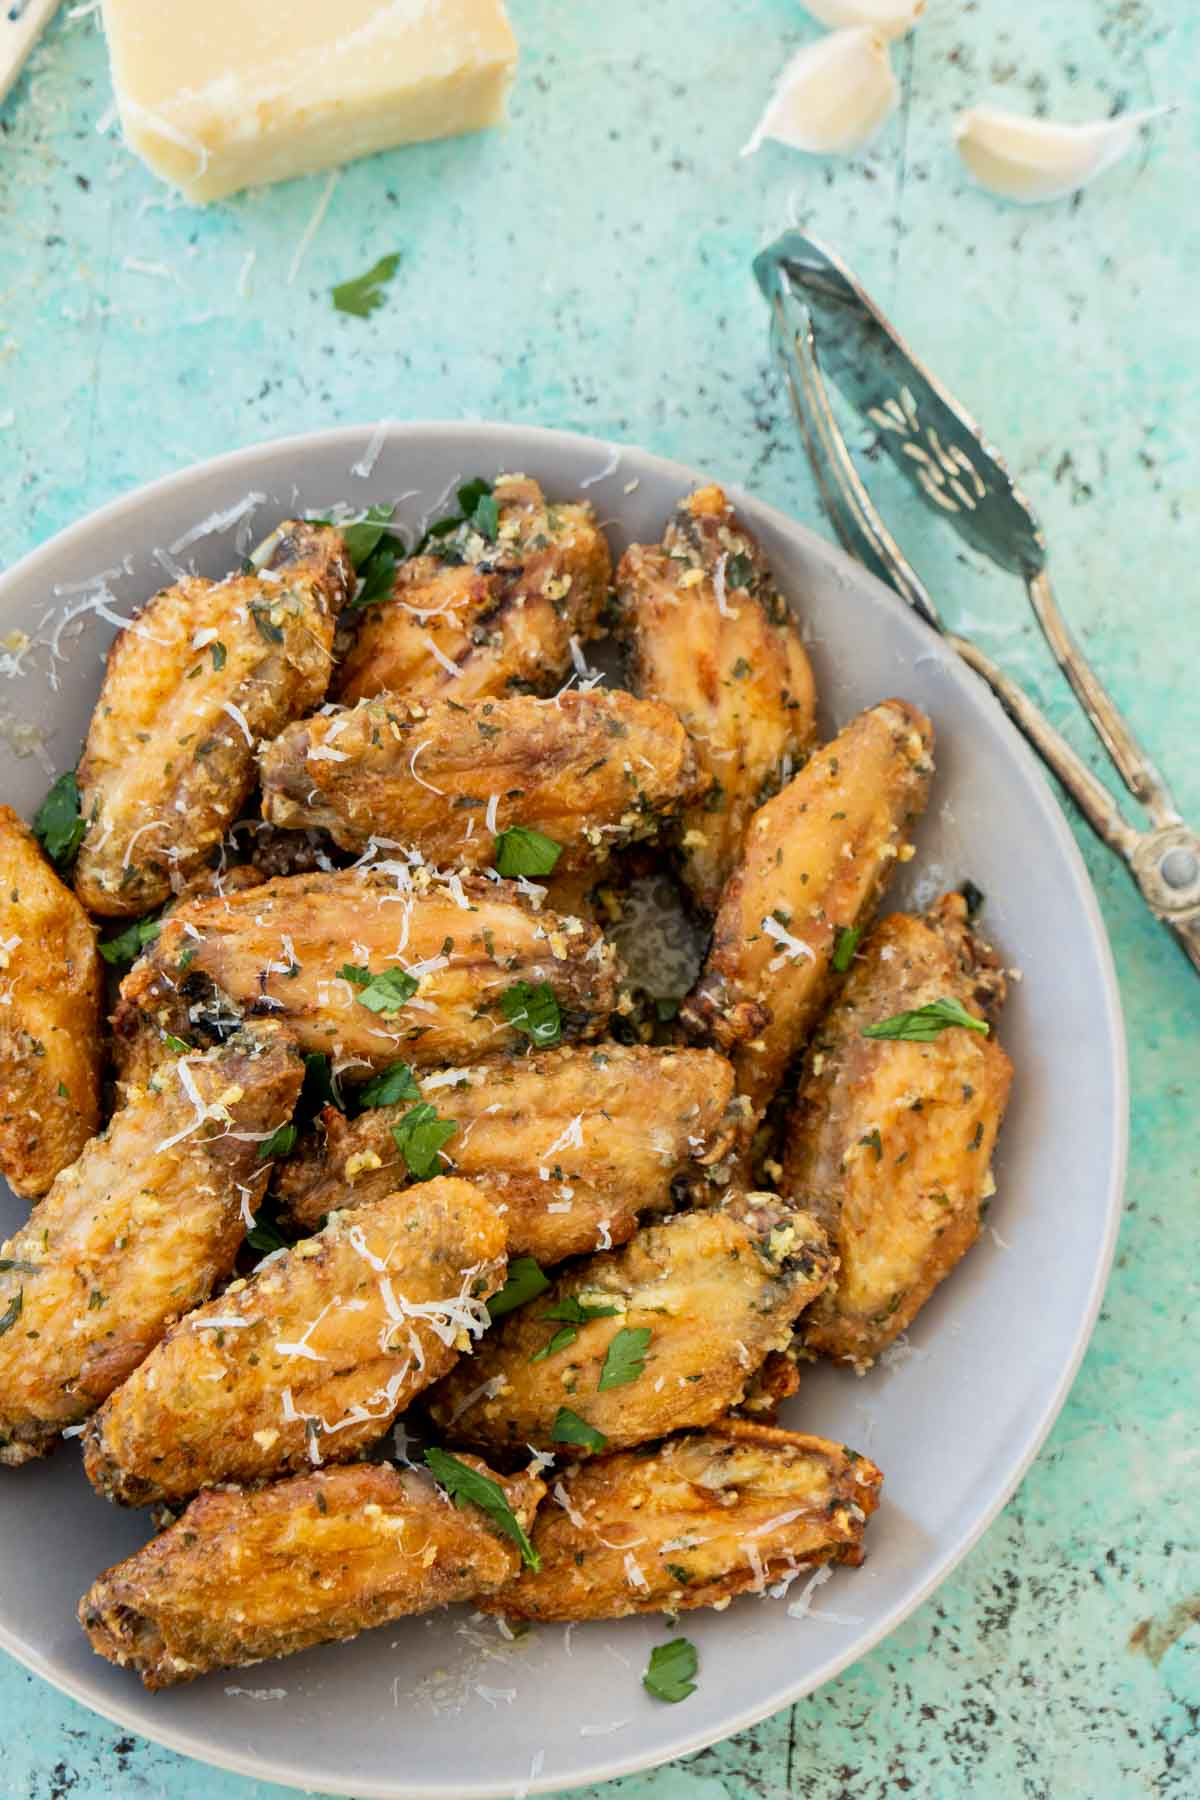 Plate of garlic parmesan wings with a block of parmesan